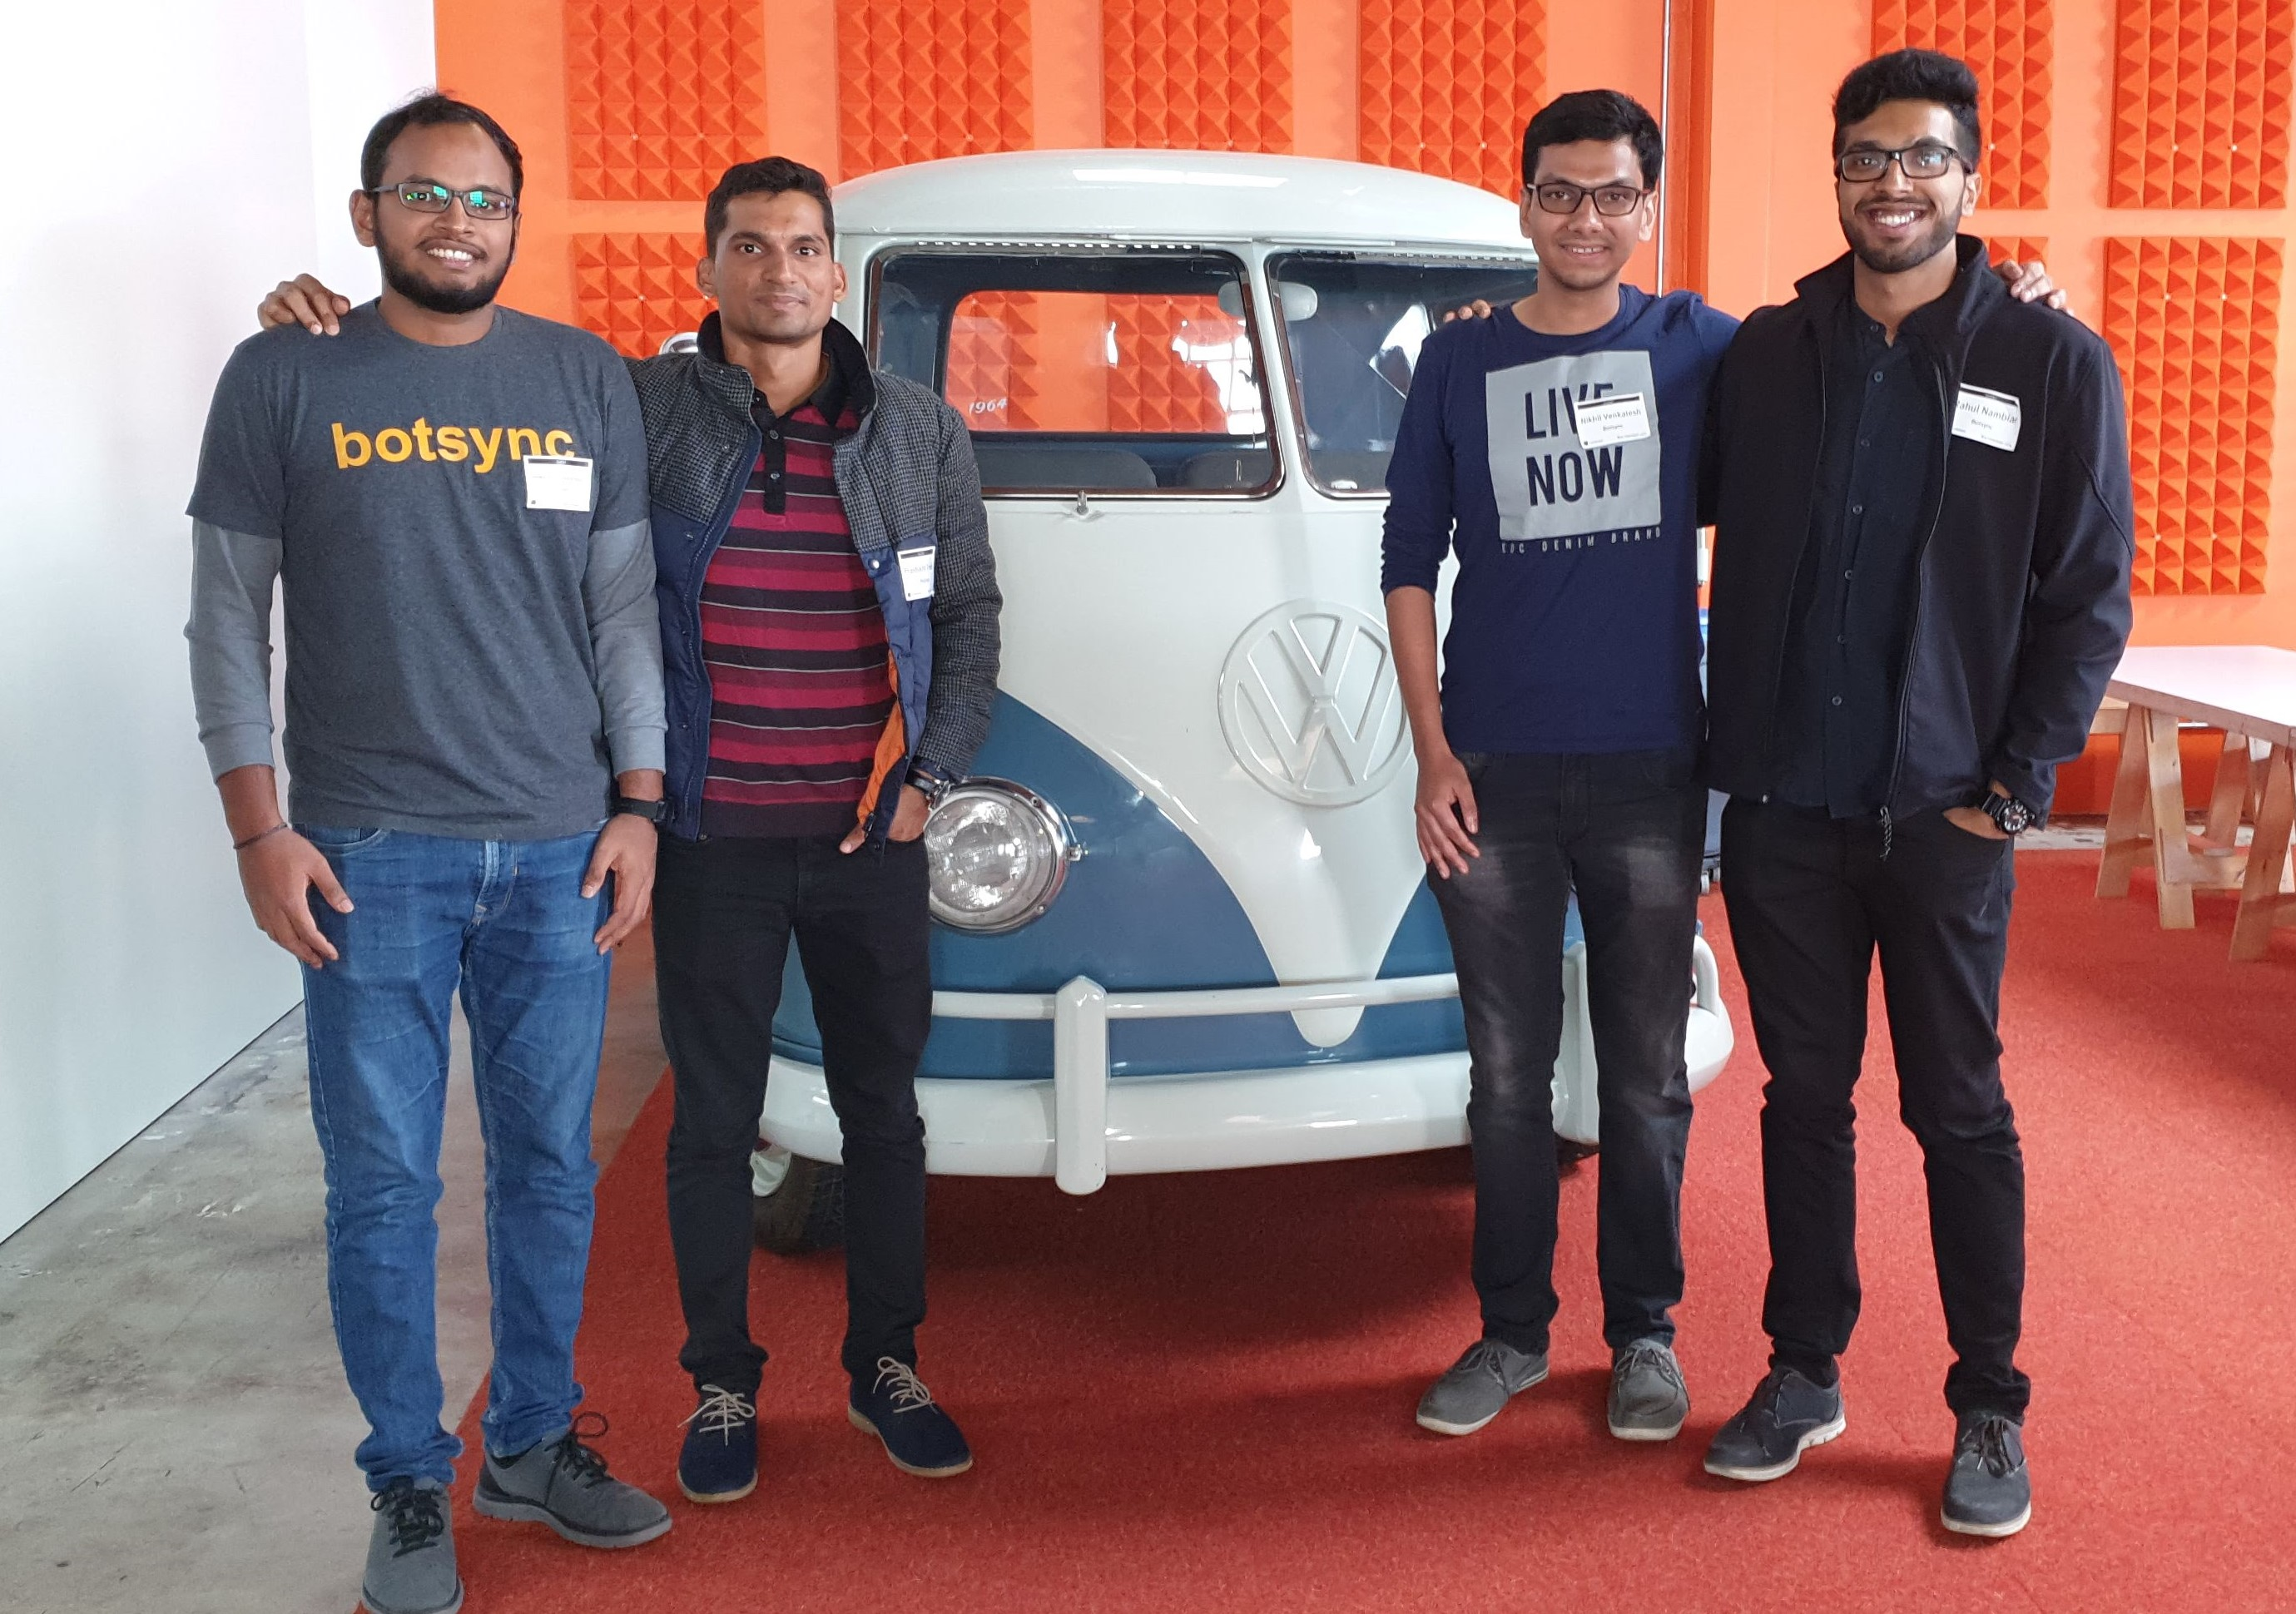 Rahul Nambiar, founded the startup in 2017. Photo Courtesy: Botsync